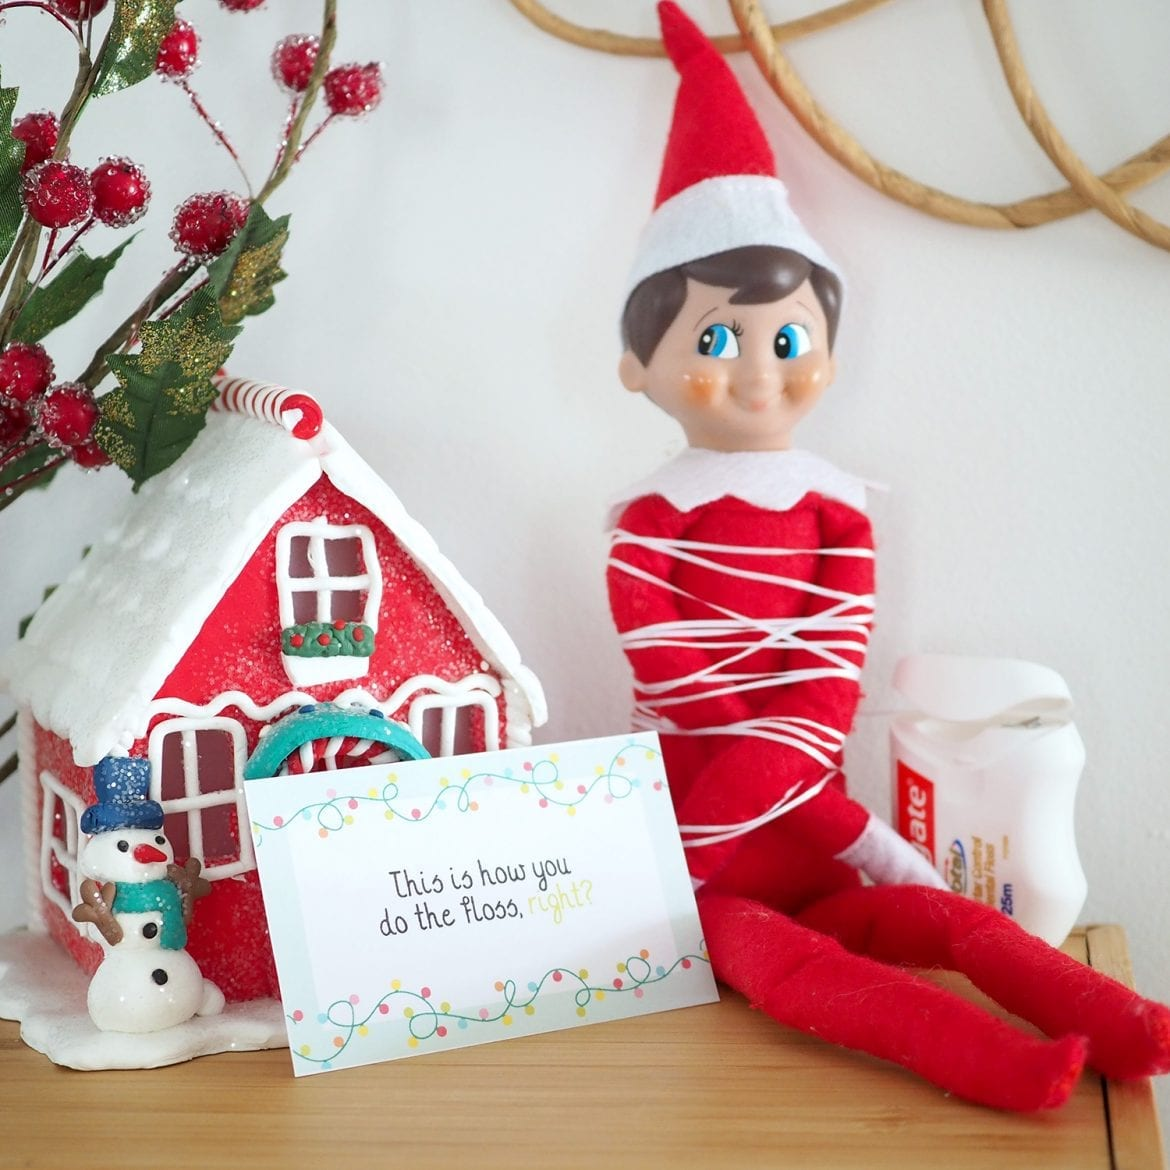 Tooth floss wrapped around Elf on the Shelf